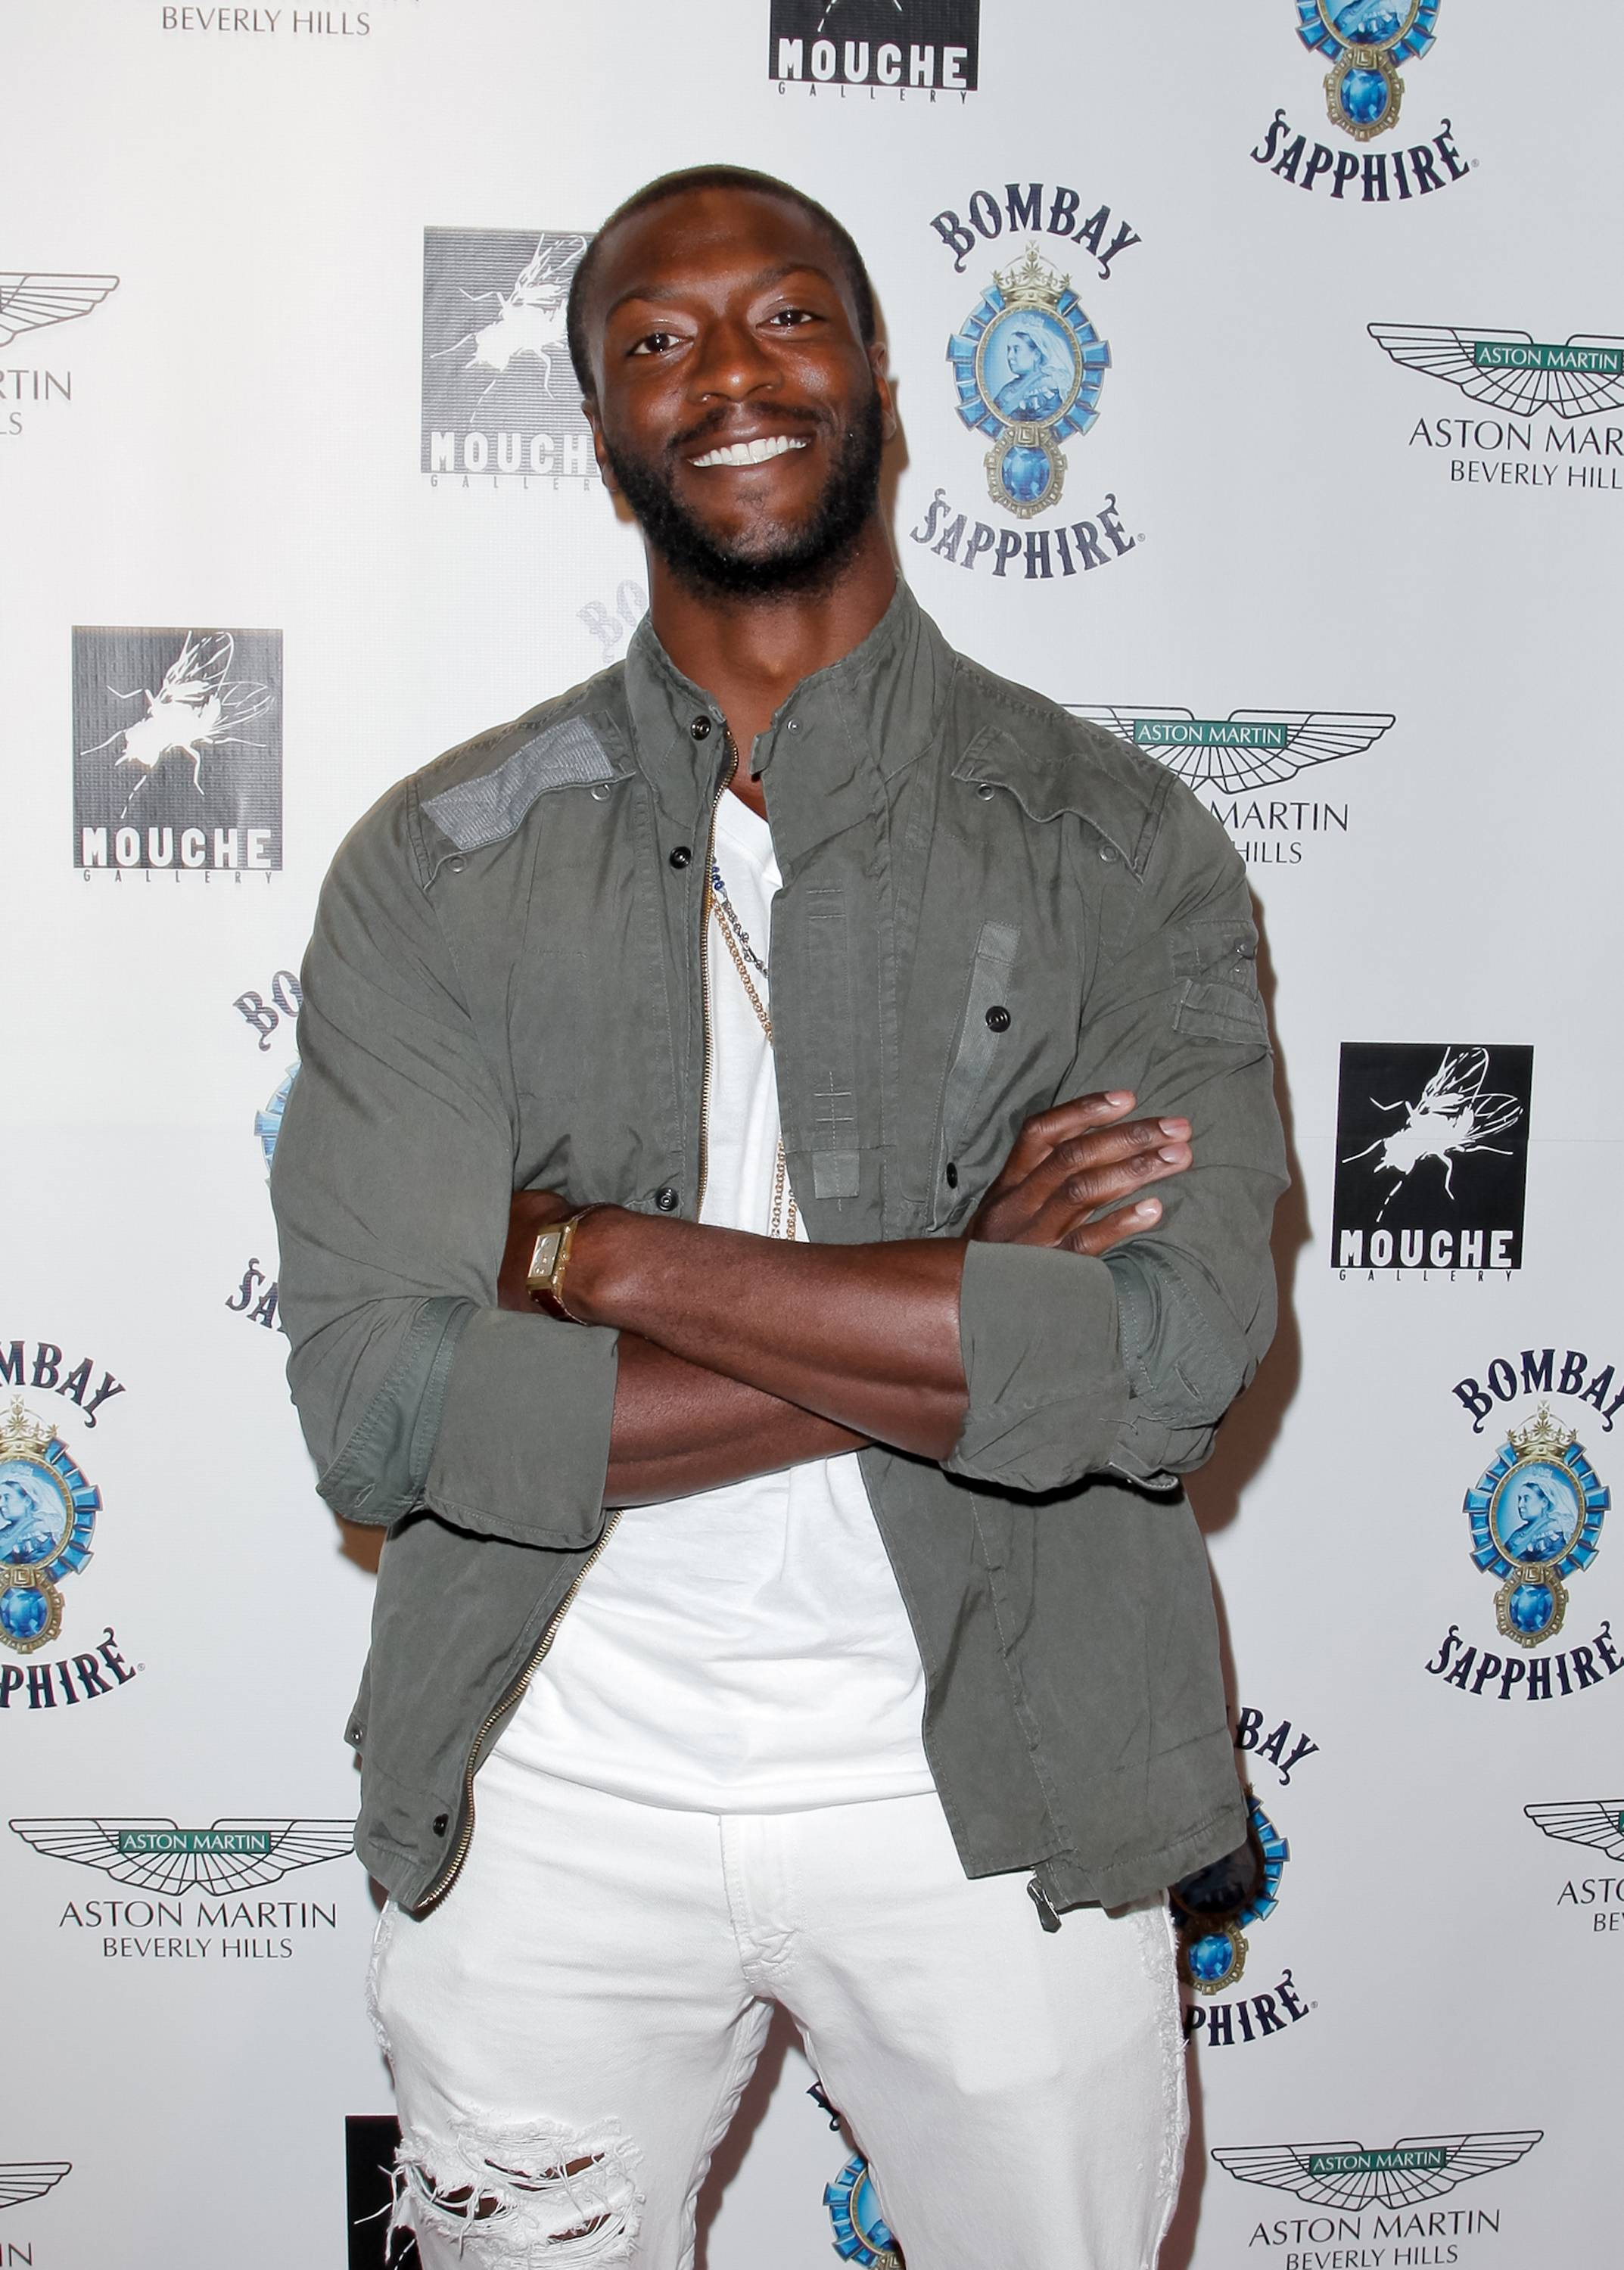 Aldis Hodge - Maybe he isn't the perfect guy for Sanaa, but it doesn't hurt to try, right? (Photo: Tibrina Hobson/WireImage)